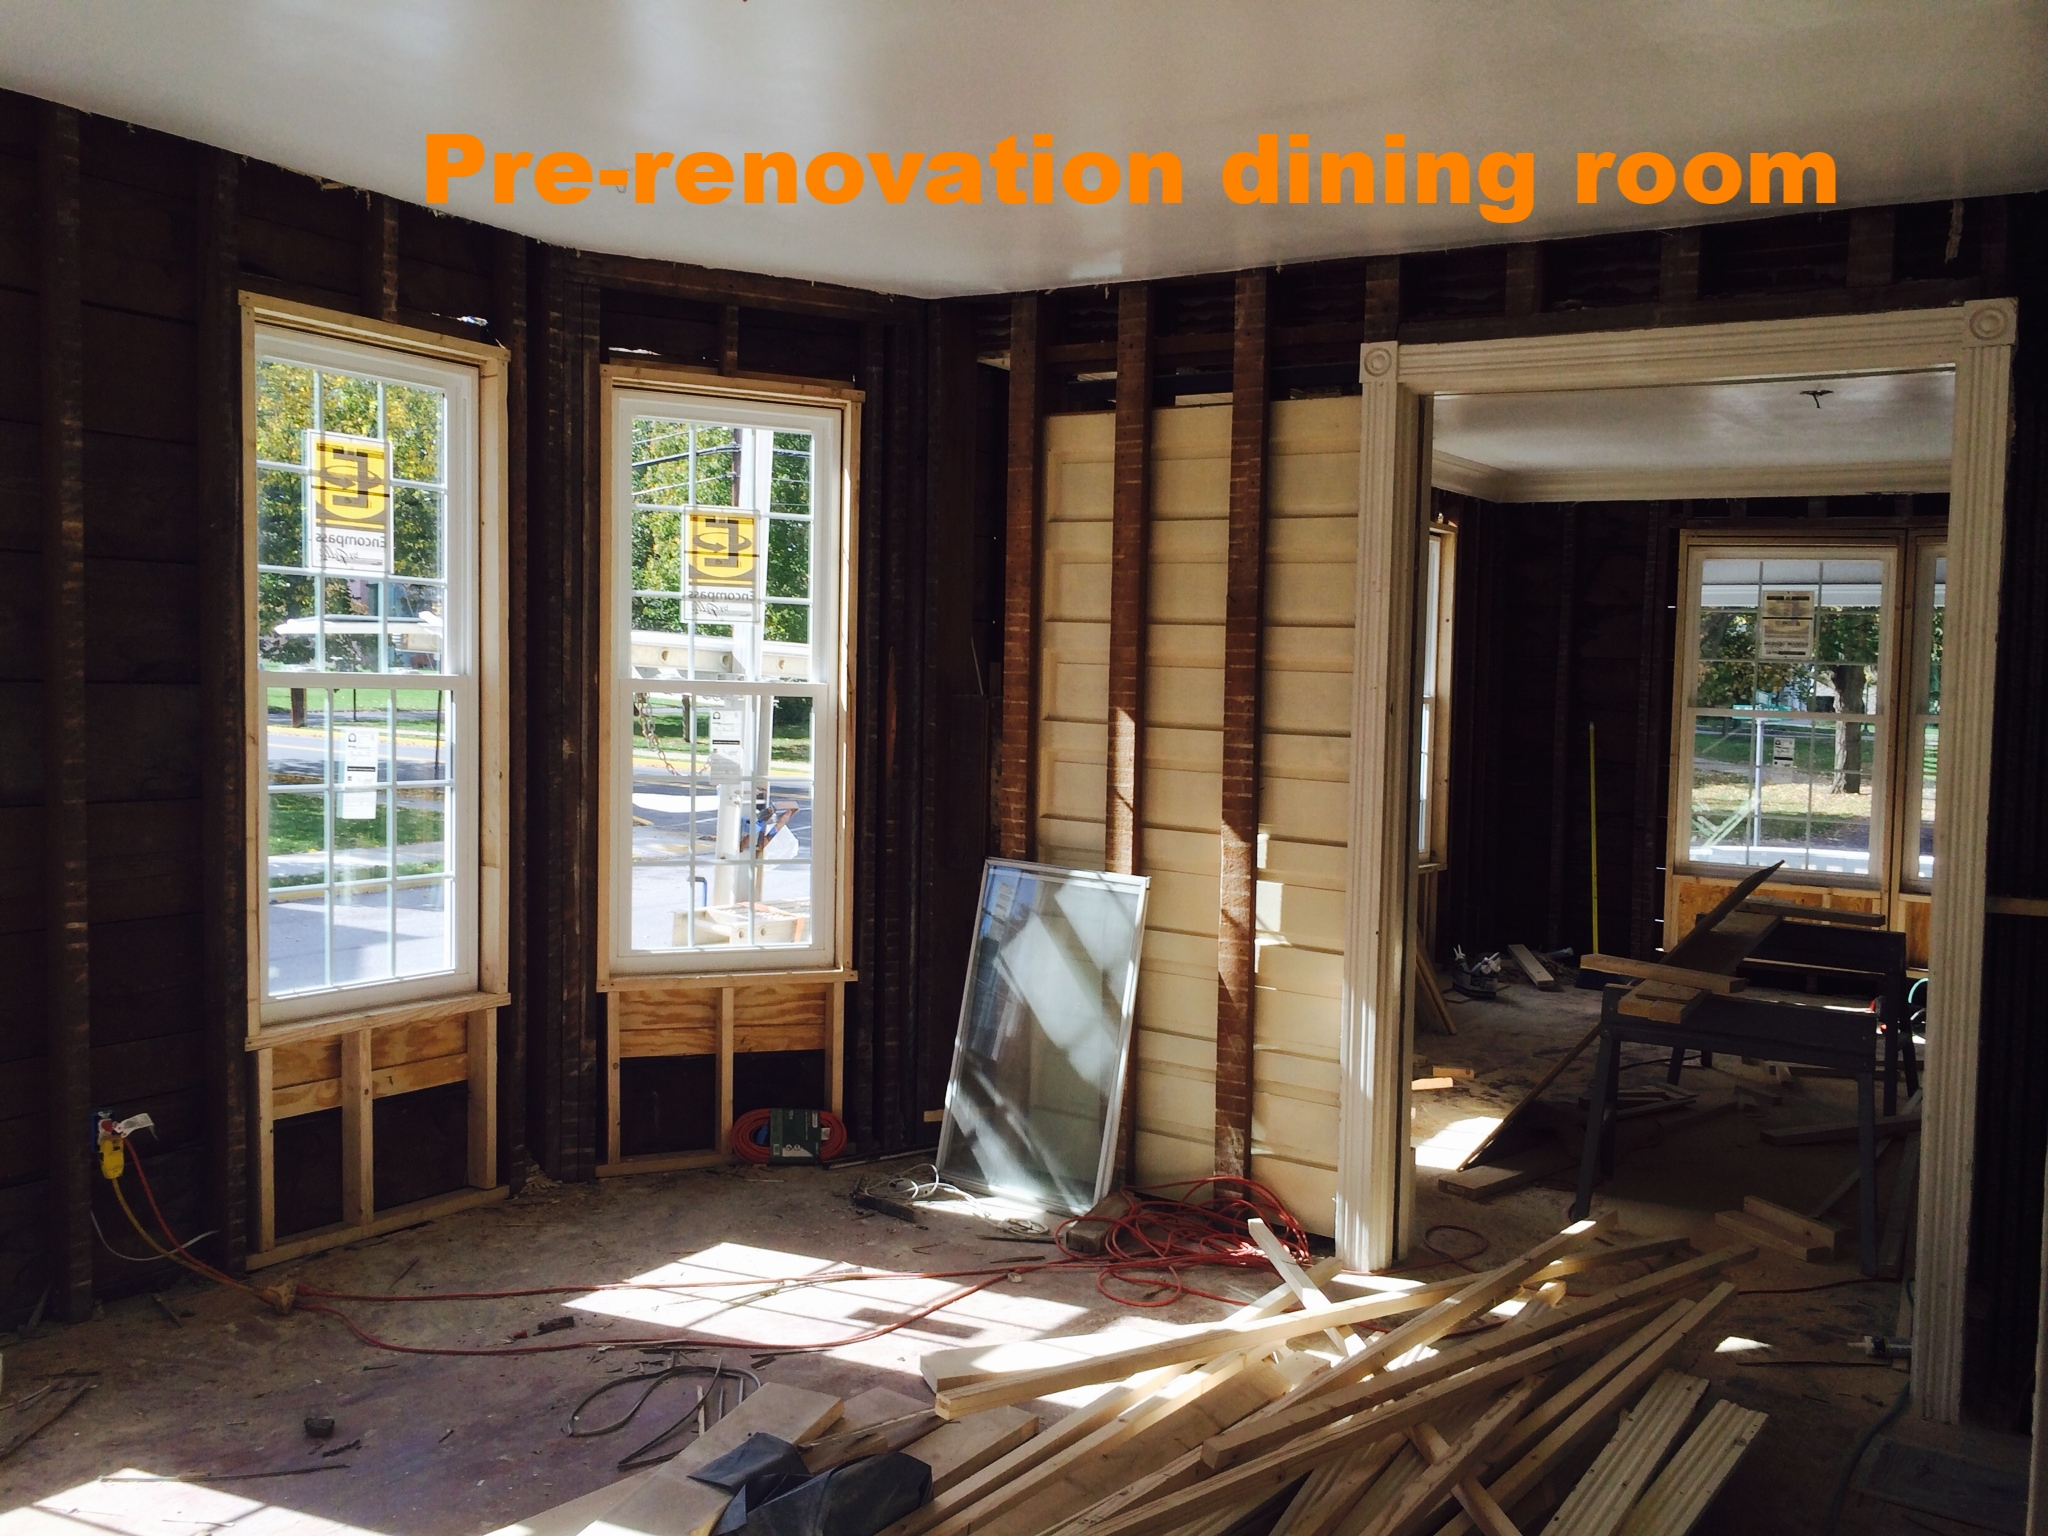 dining room_before.JPG